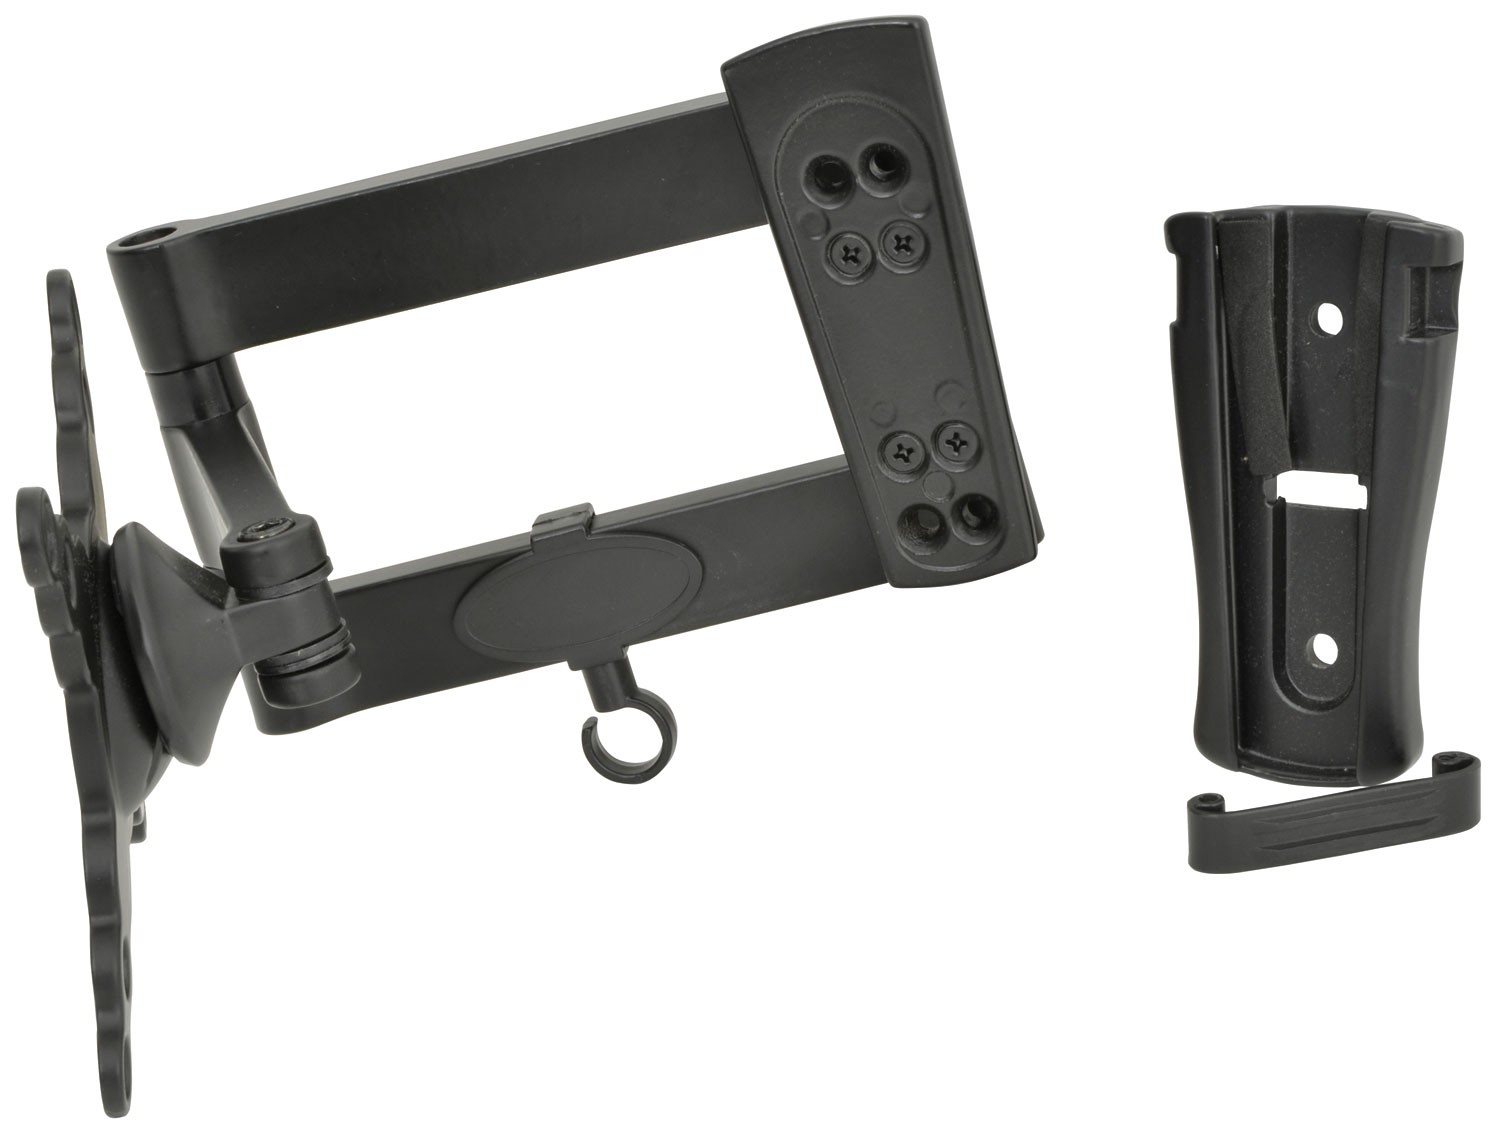 Double Arm Adjustable Tv Monitor Wall Mount Bracket Kpms